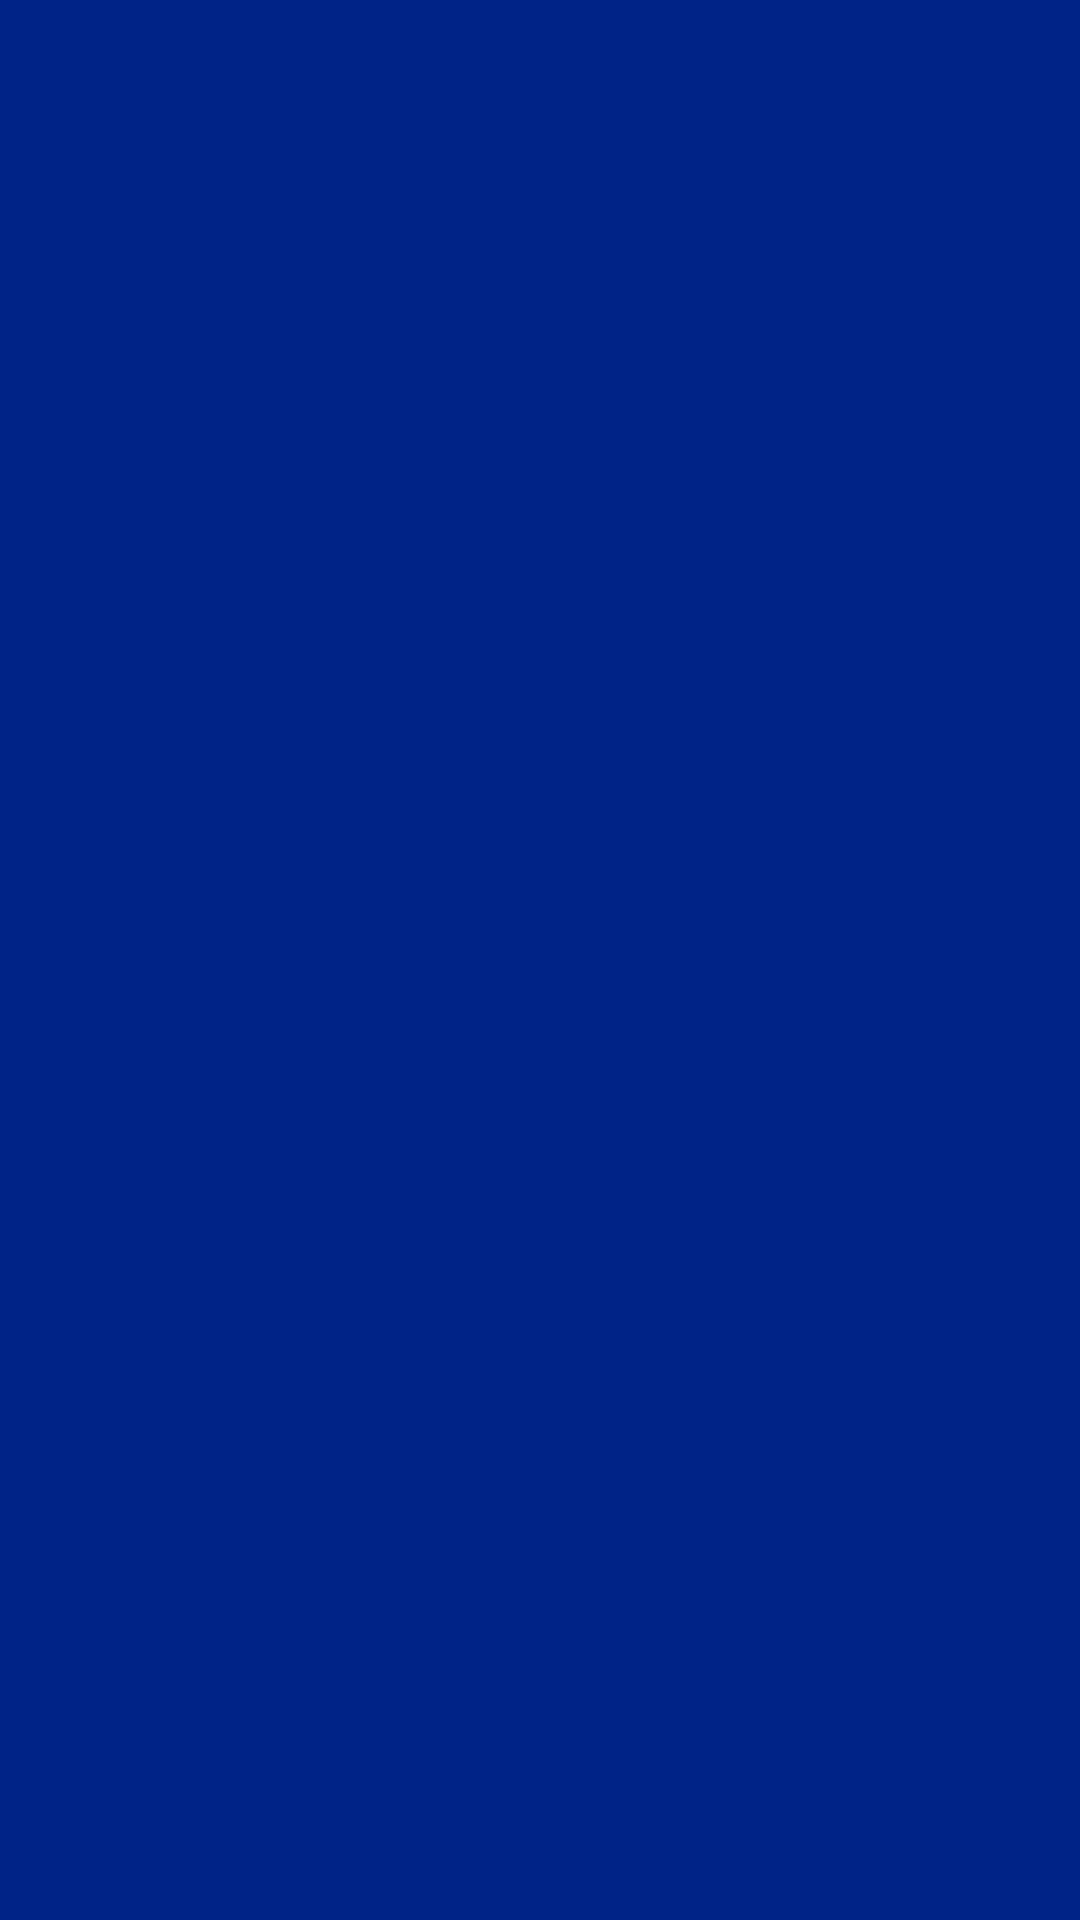 1080x1920 Resolution Blue Solid Color Background